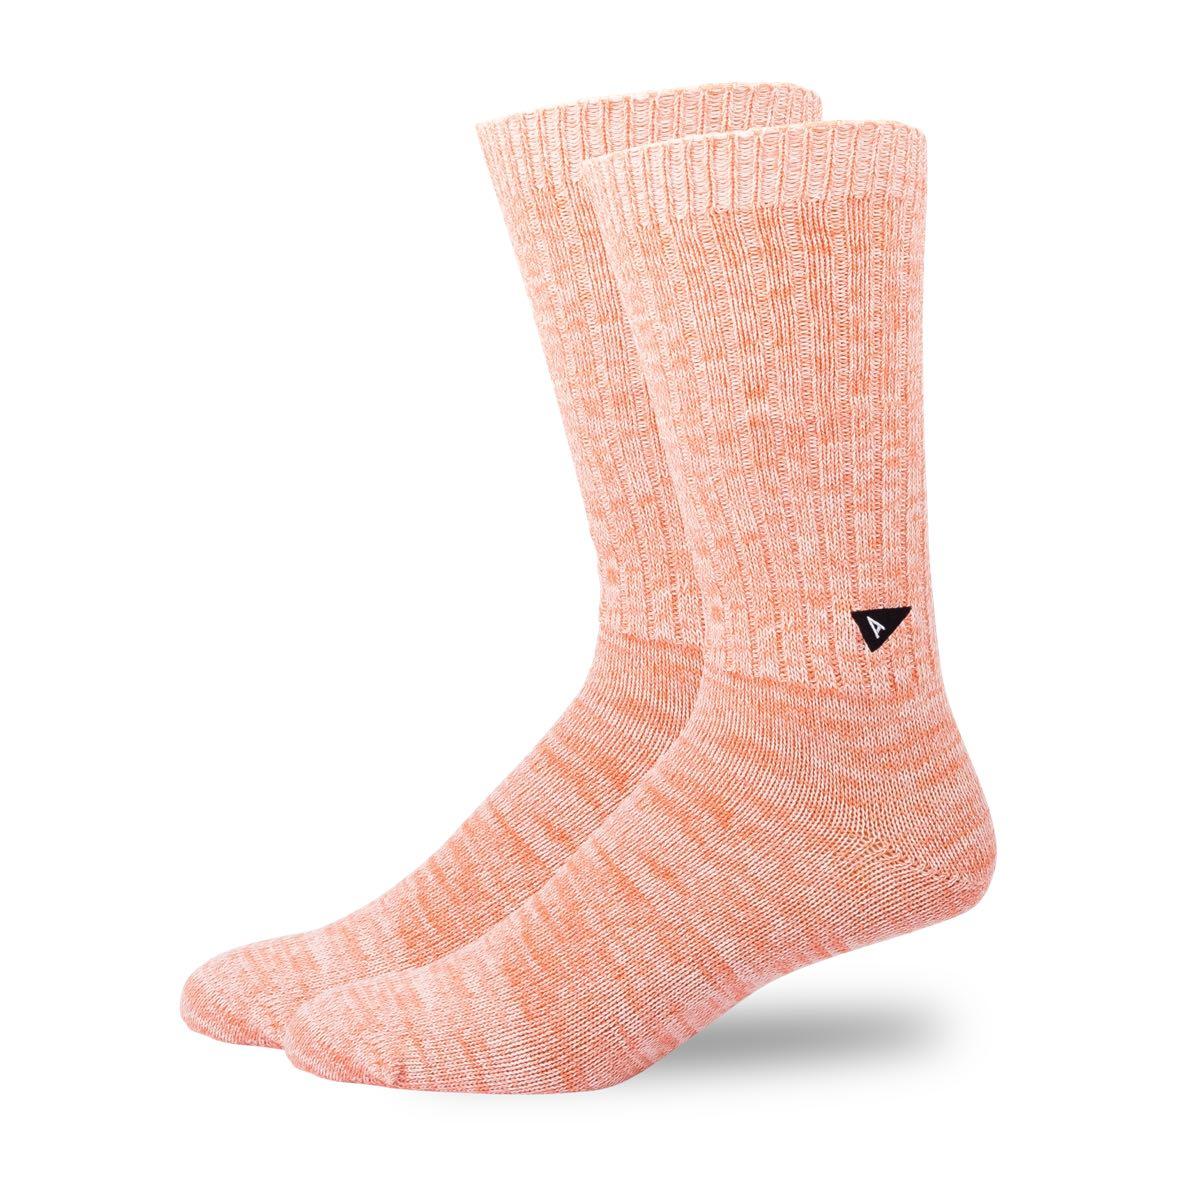 Arvin Goods Casual Twisted Socks - Coral image 1